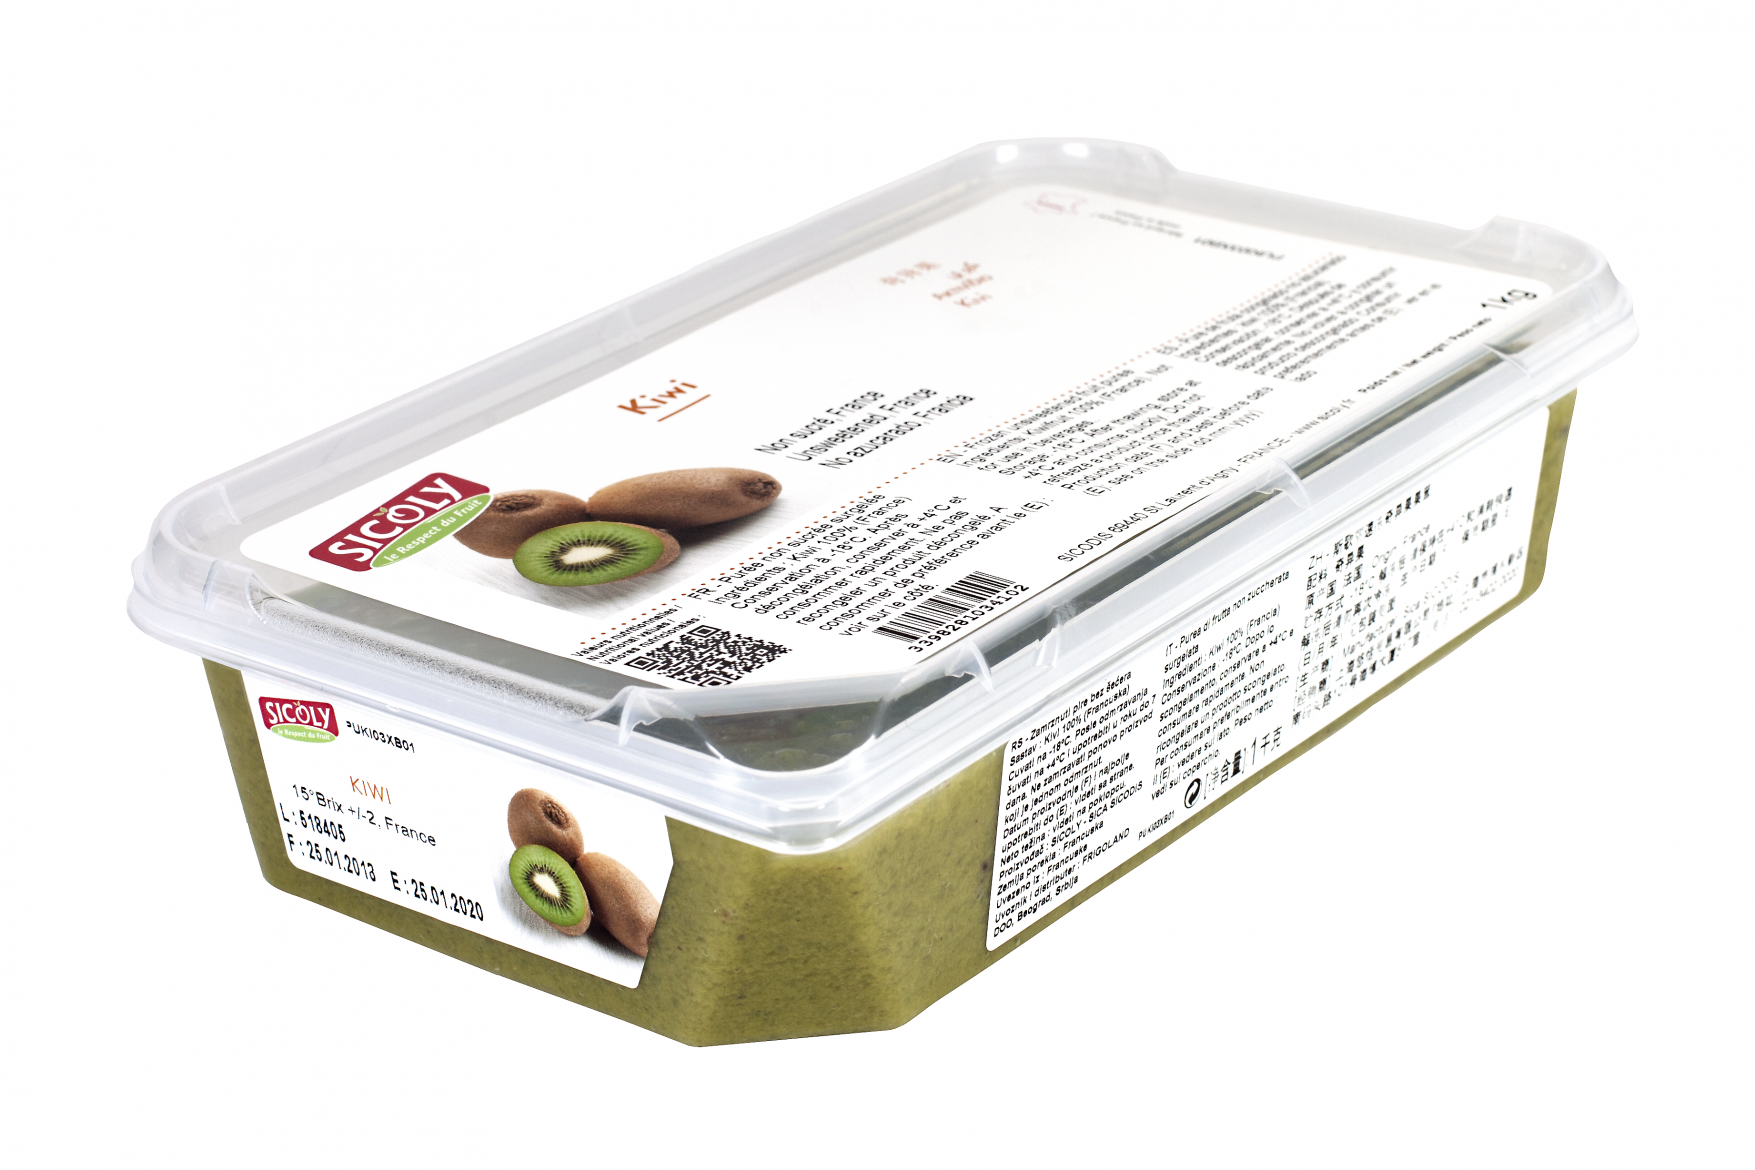 Sicoly product image No added sugar frozen kiwi purée - France